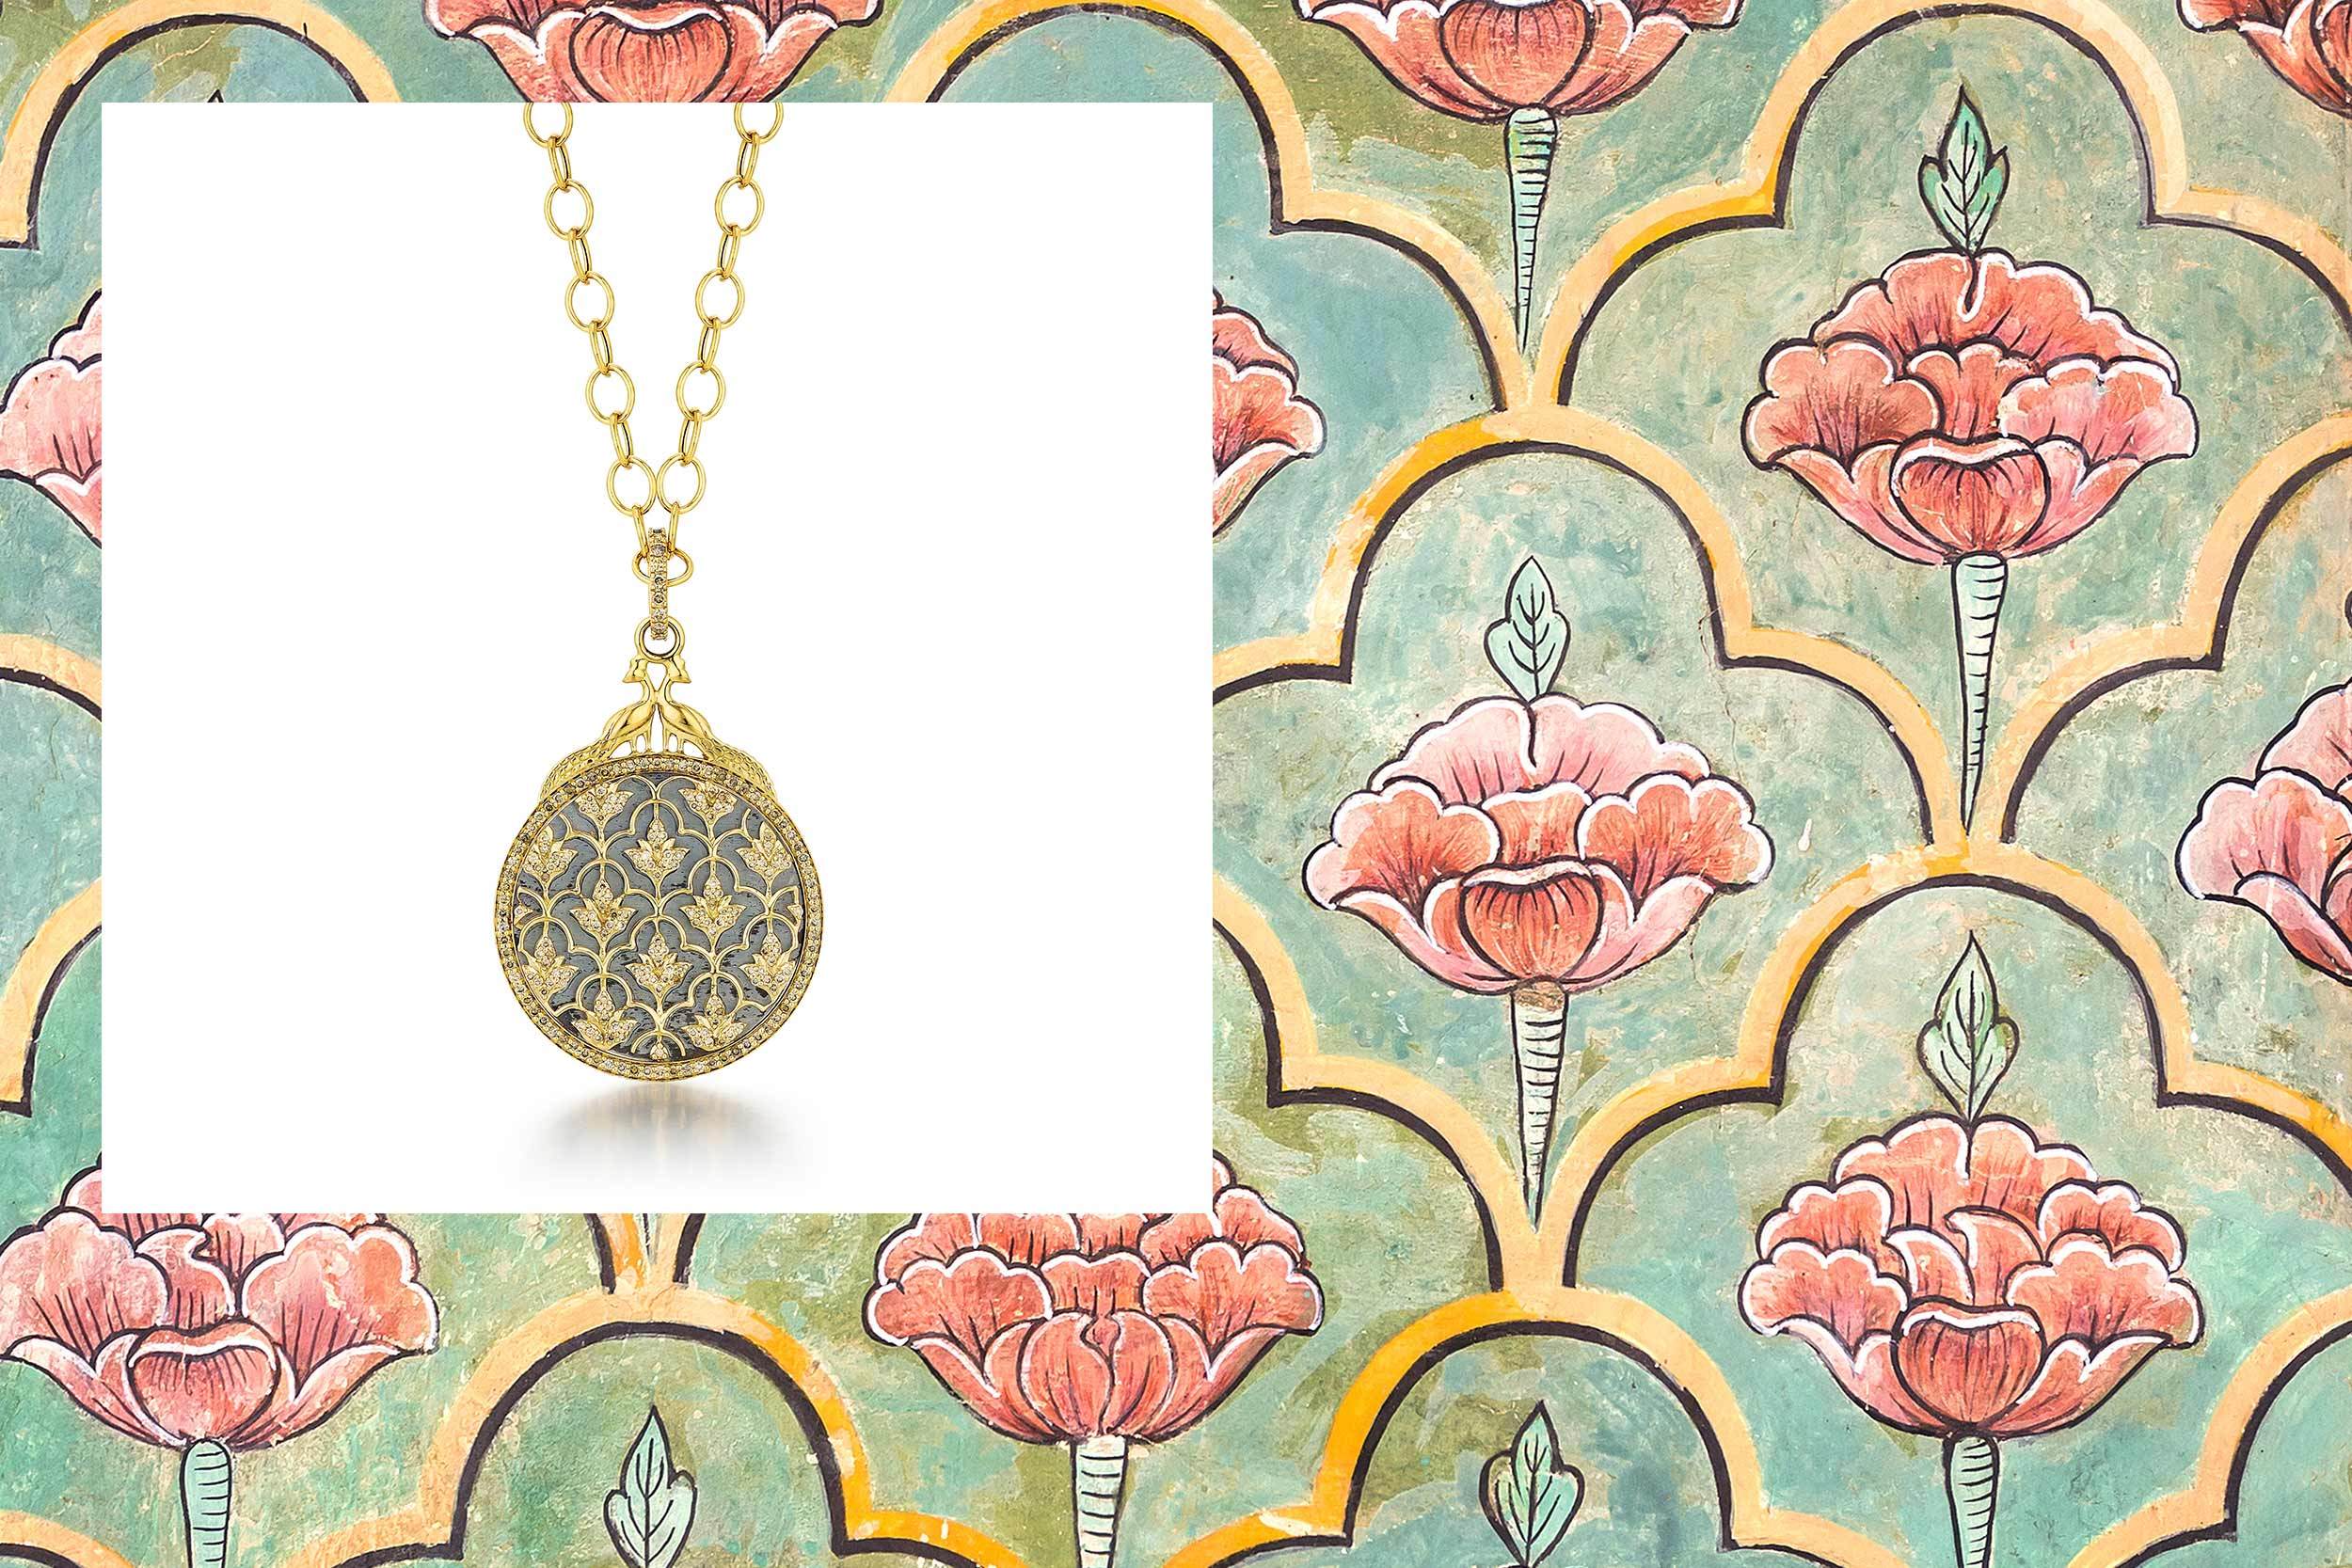 18kyg mogul peacock necklace with champagne diamonds